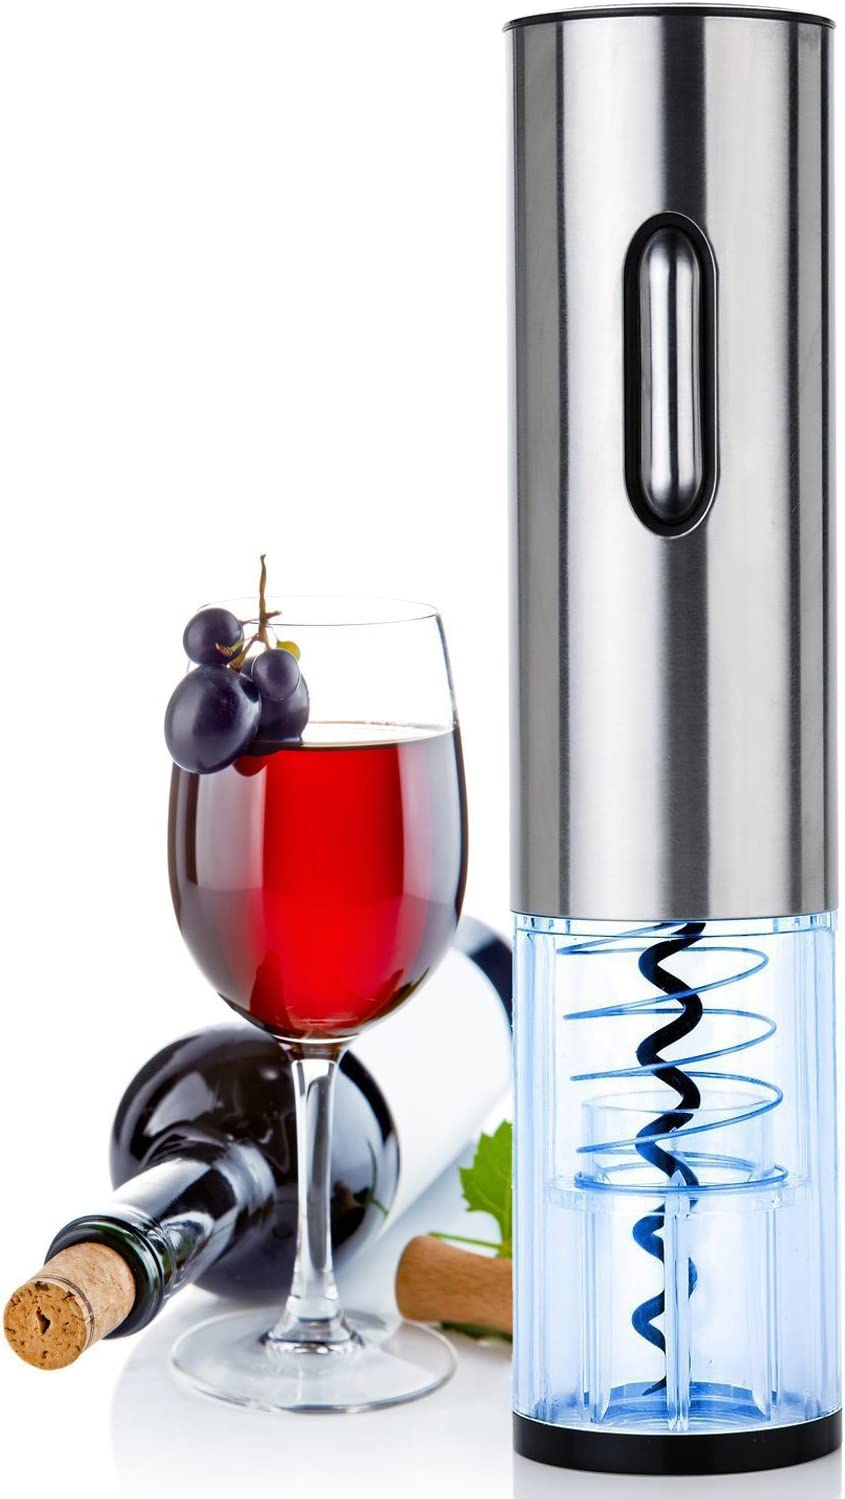 Electric wine bottle opener-rechargeable automatic corkscrew with foil remover, 5 seconds rapid opening, suitable for home kitchen, outdoor picnic, garden party, bar and other places stainless steel